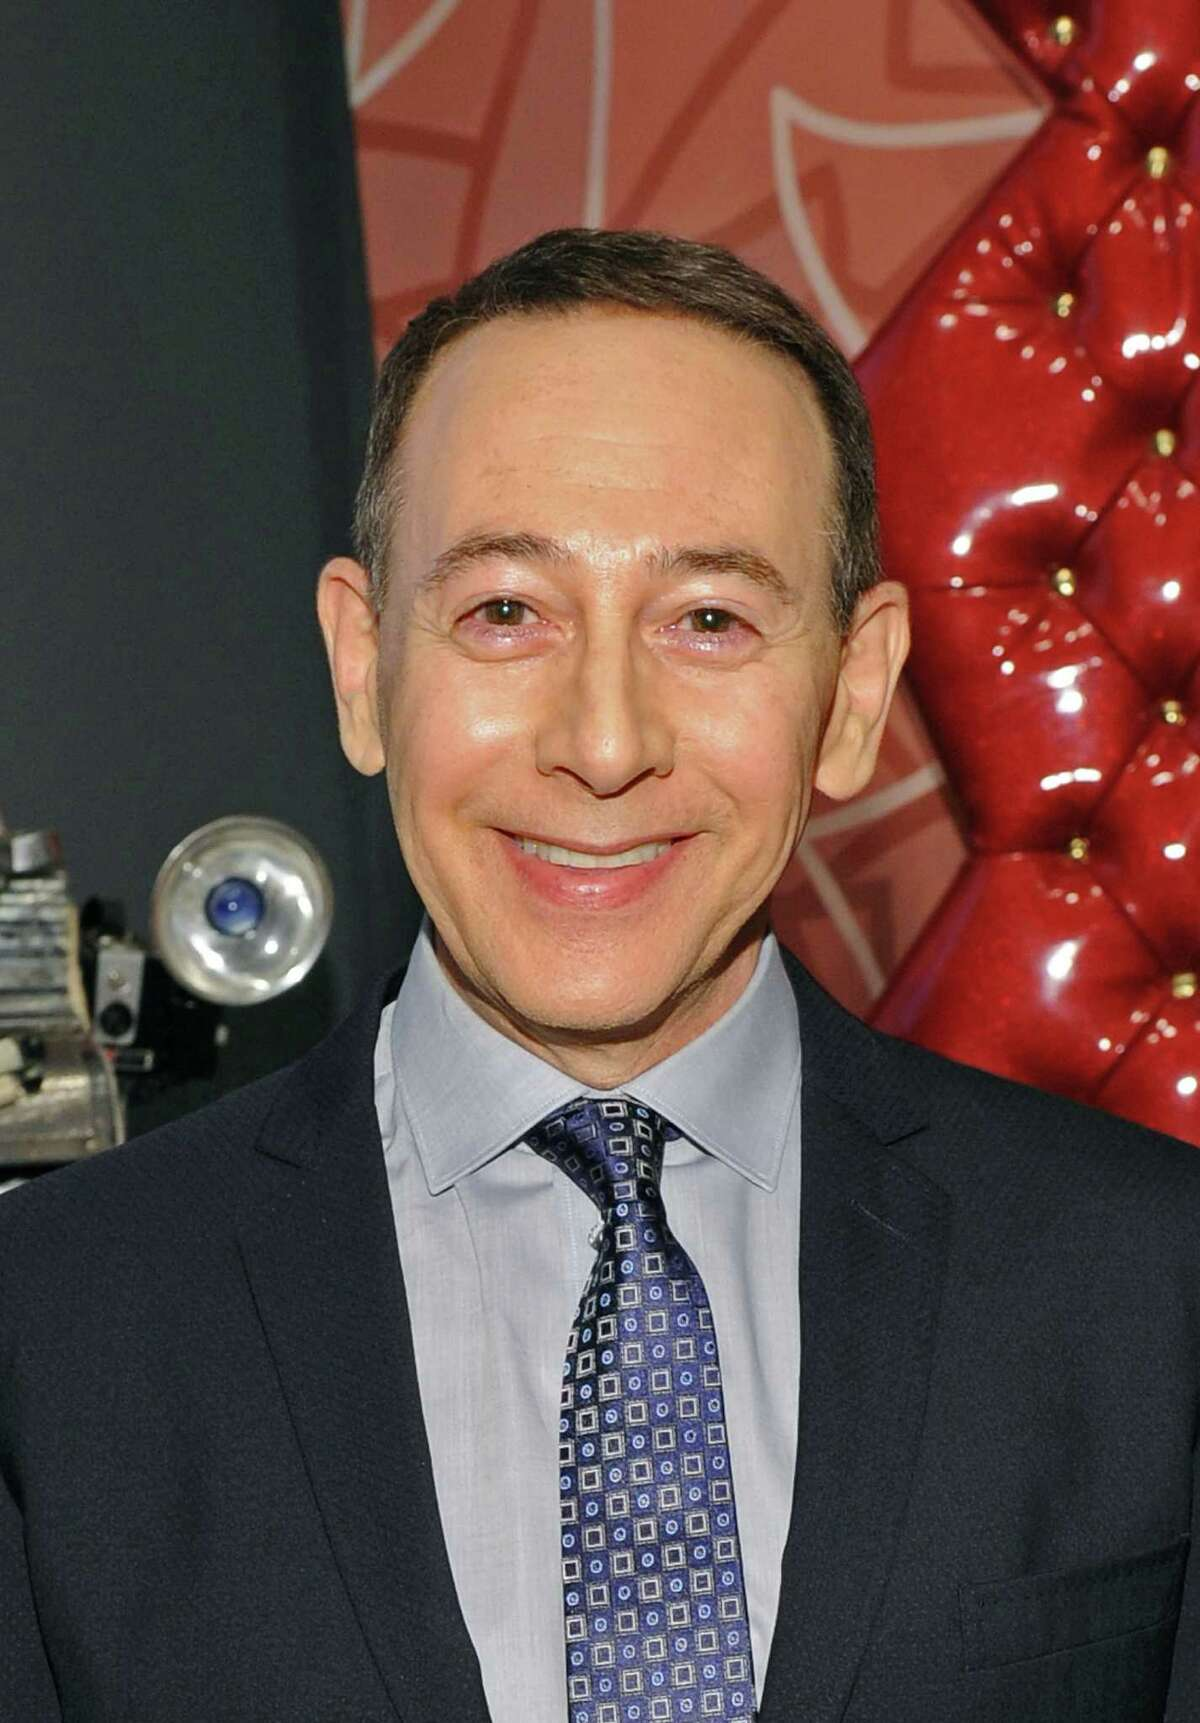 NEW YORK, NY - JULY 24: Paul Reubens attends the opening night party for the